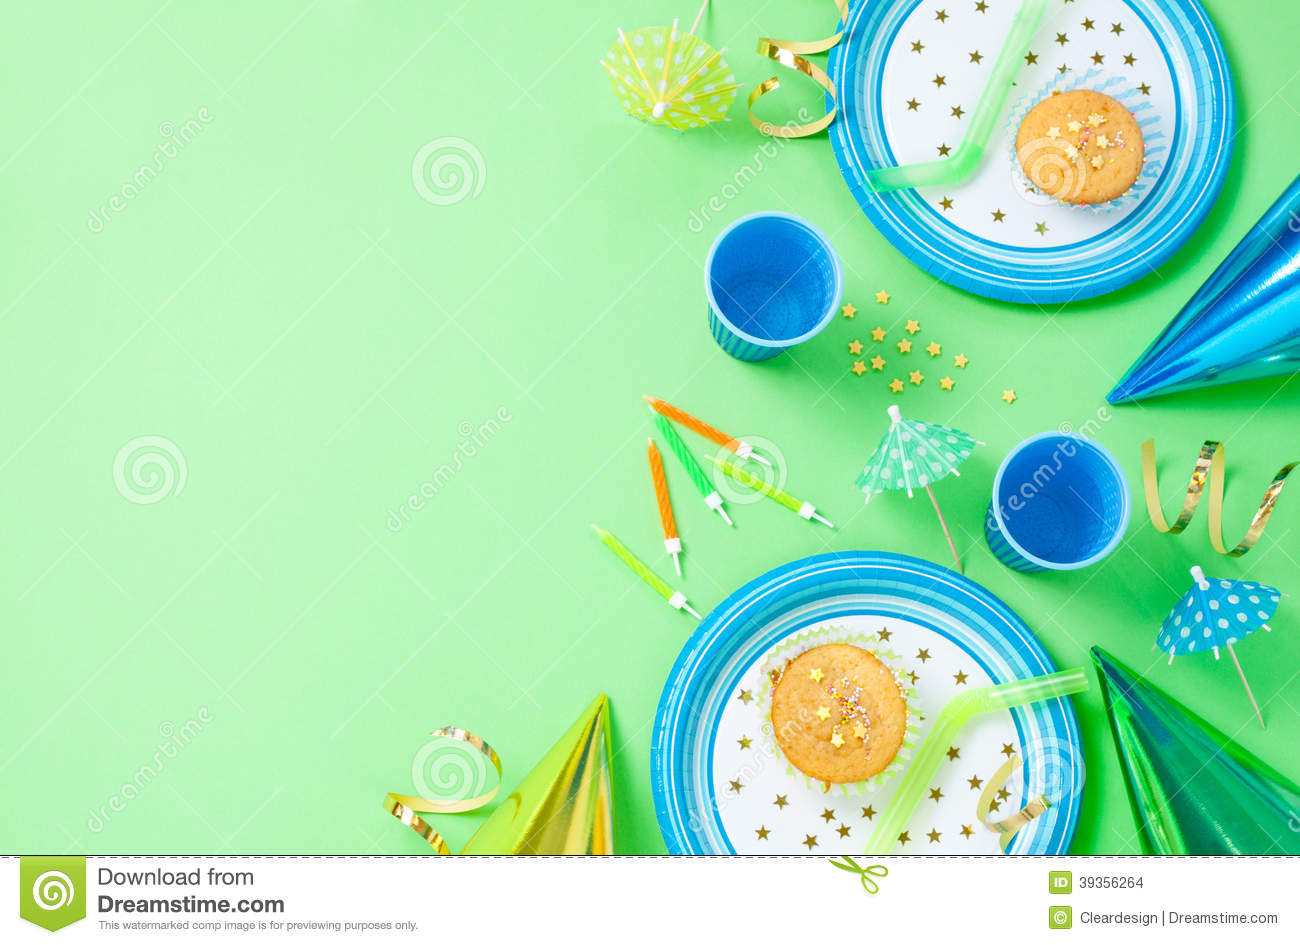 Boy birthday decorations on green table stock photo for Background decoration images